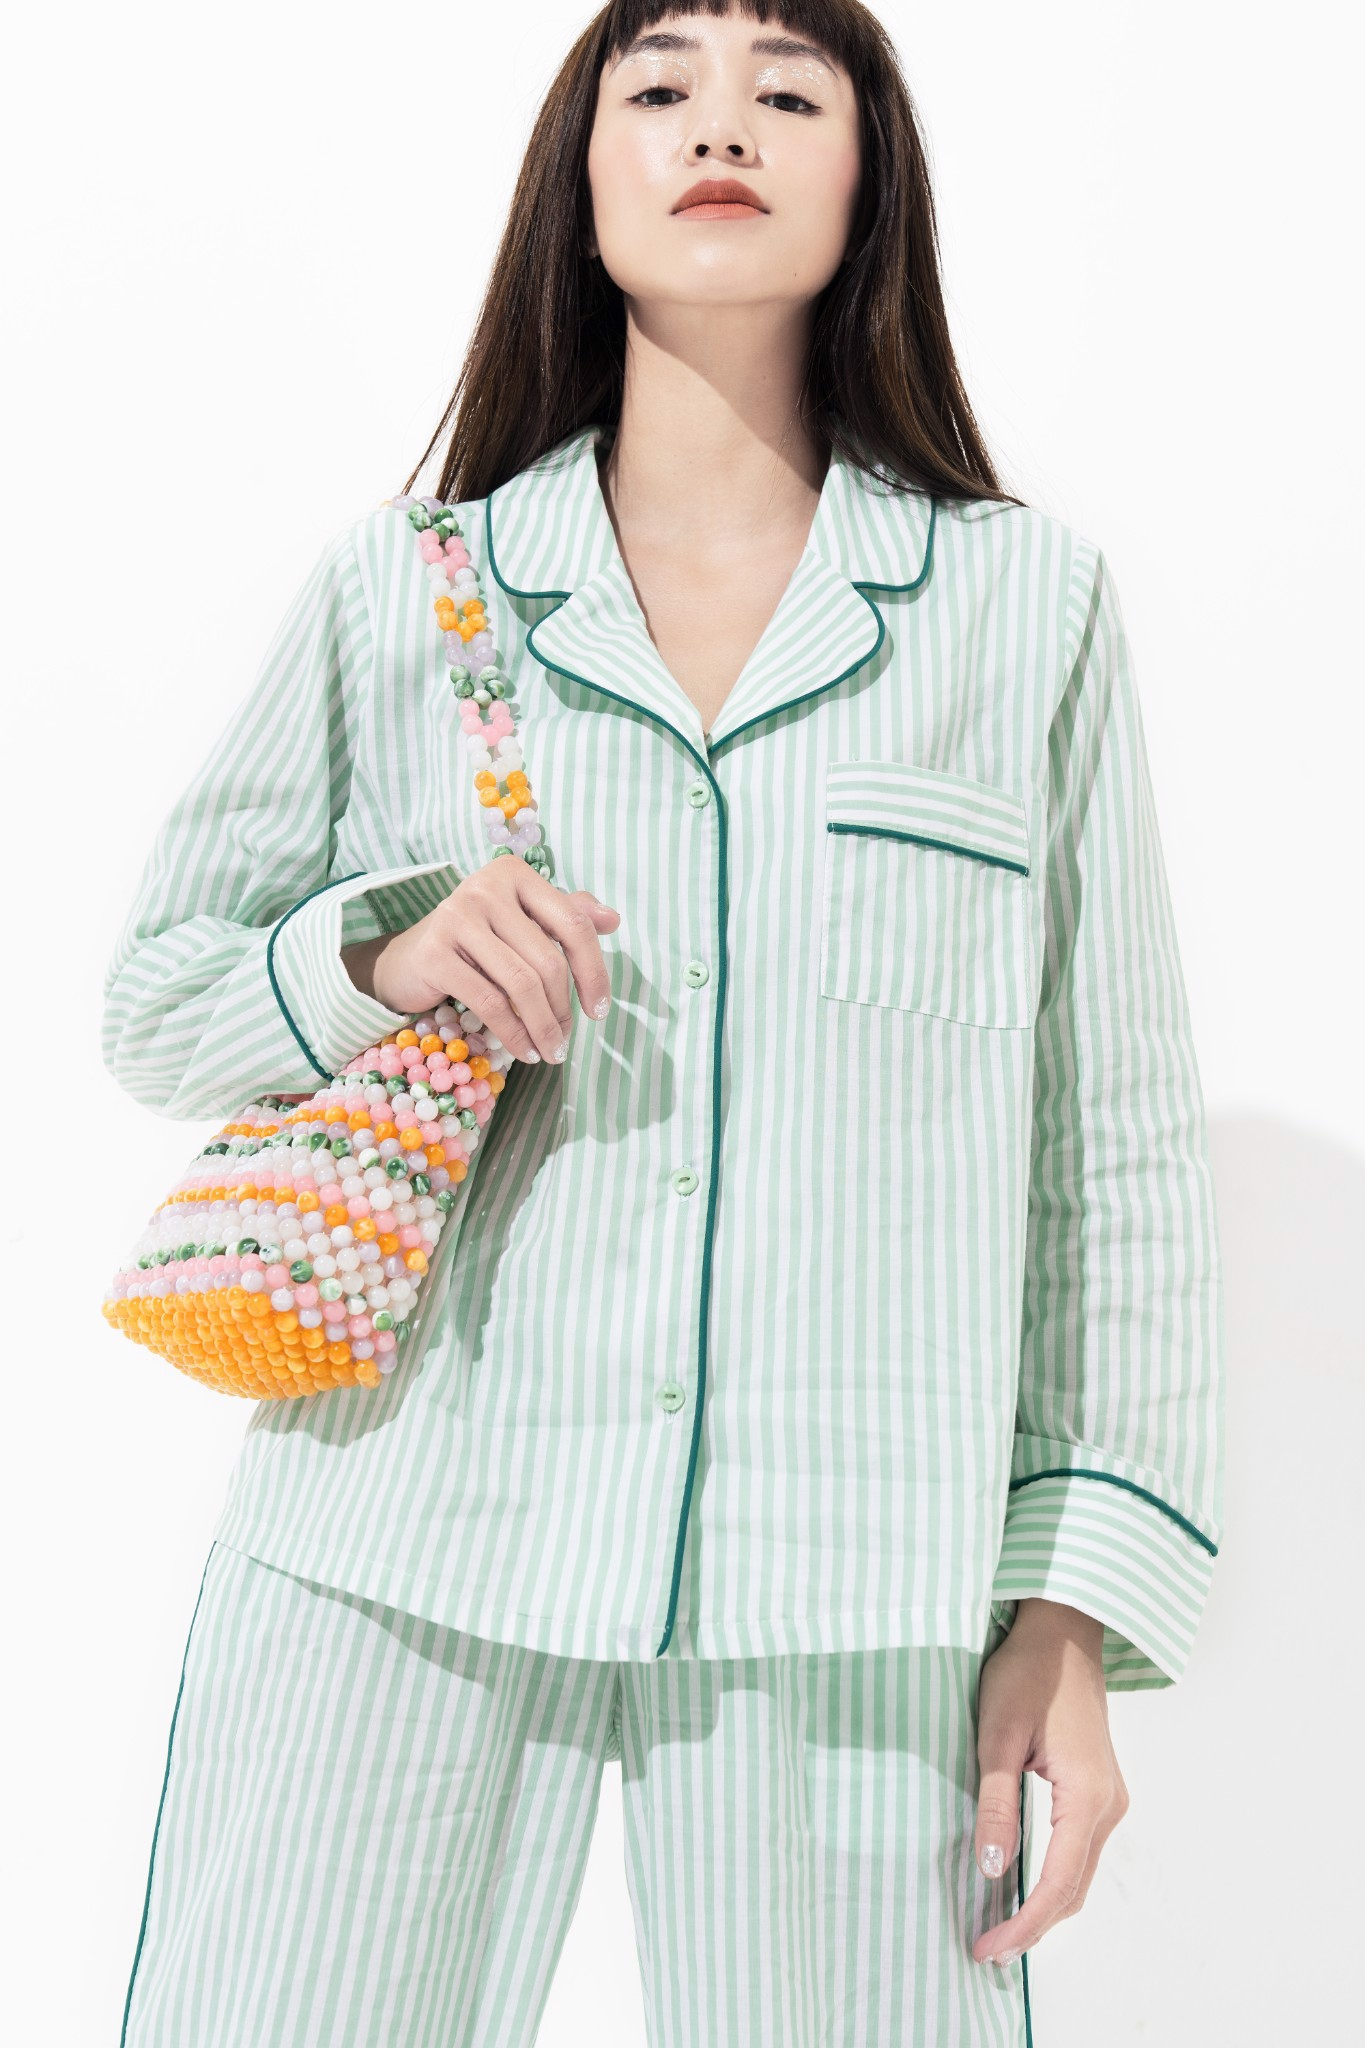 HOME SWEET HOME PJ SHIRT - MINT TEA